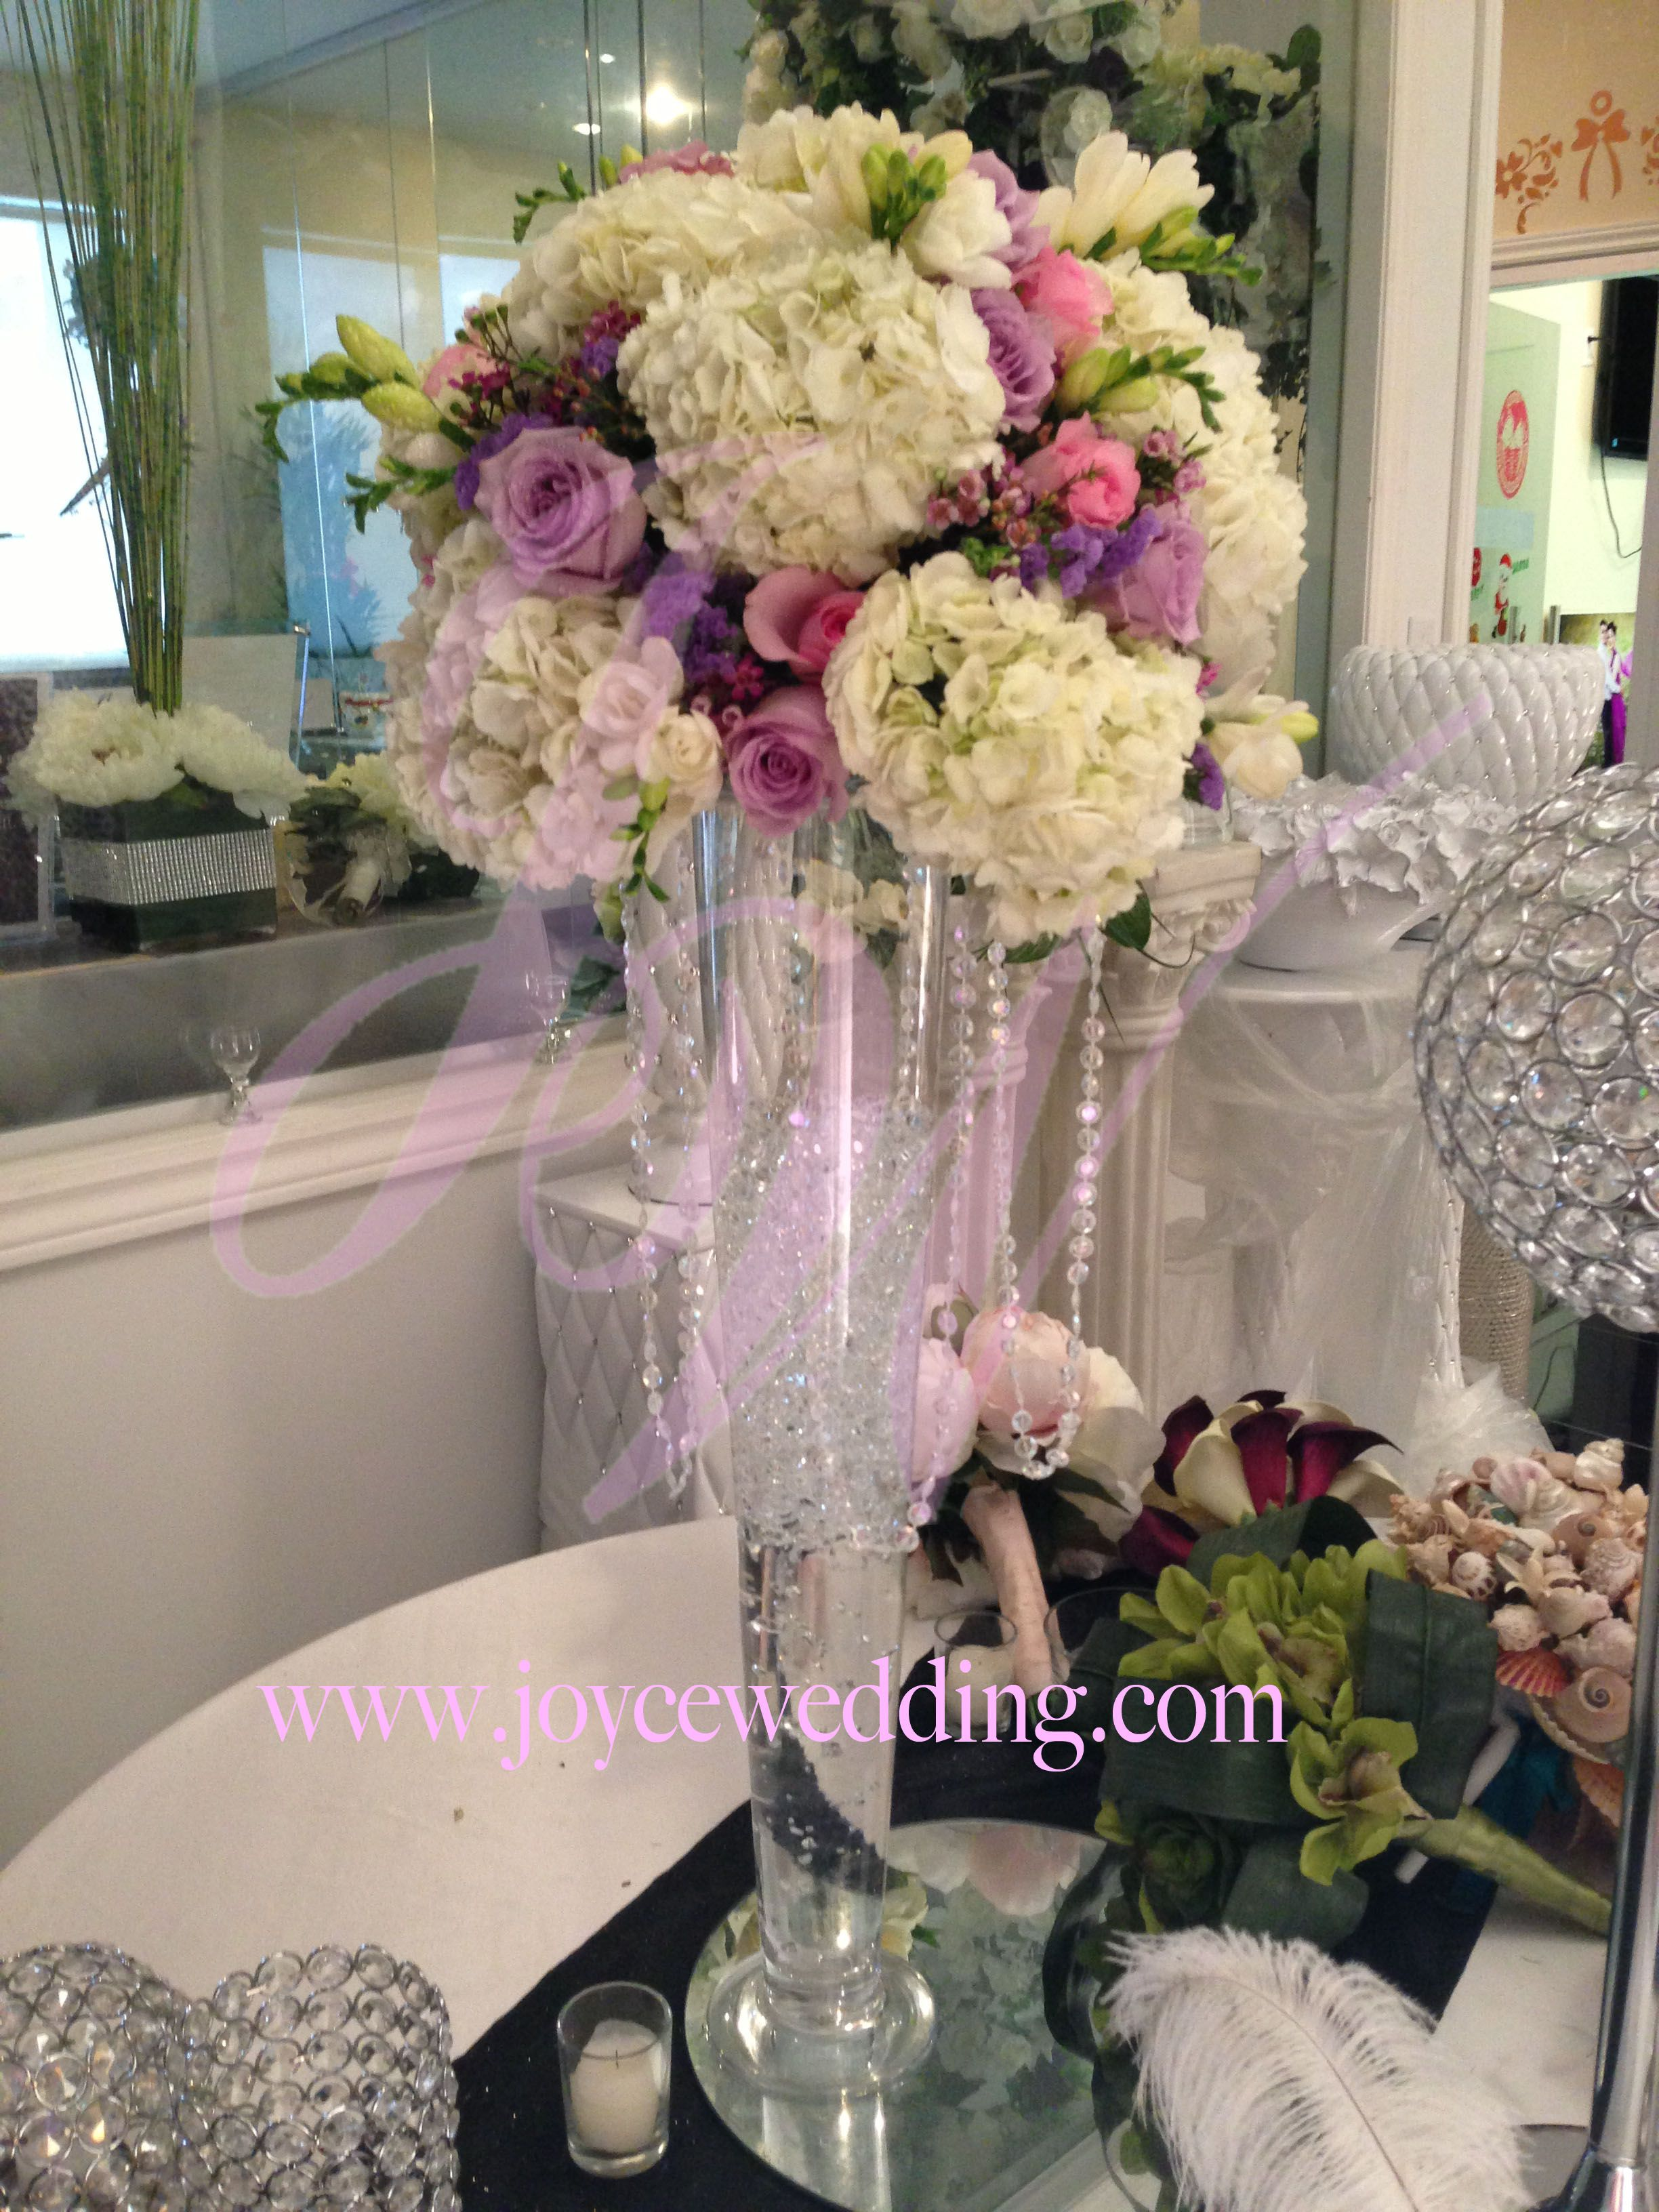 White hydrangeas lavender and pink roses and freesia centerpieces white hydrangeas lavender and pink roses and freesia centerpieces with crystal 1 junglespirit Images